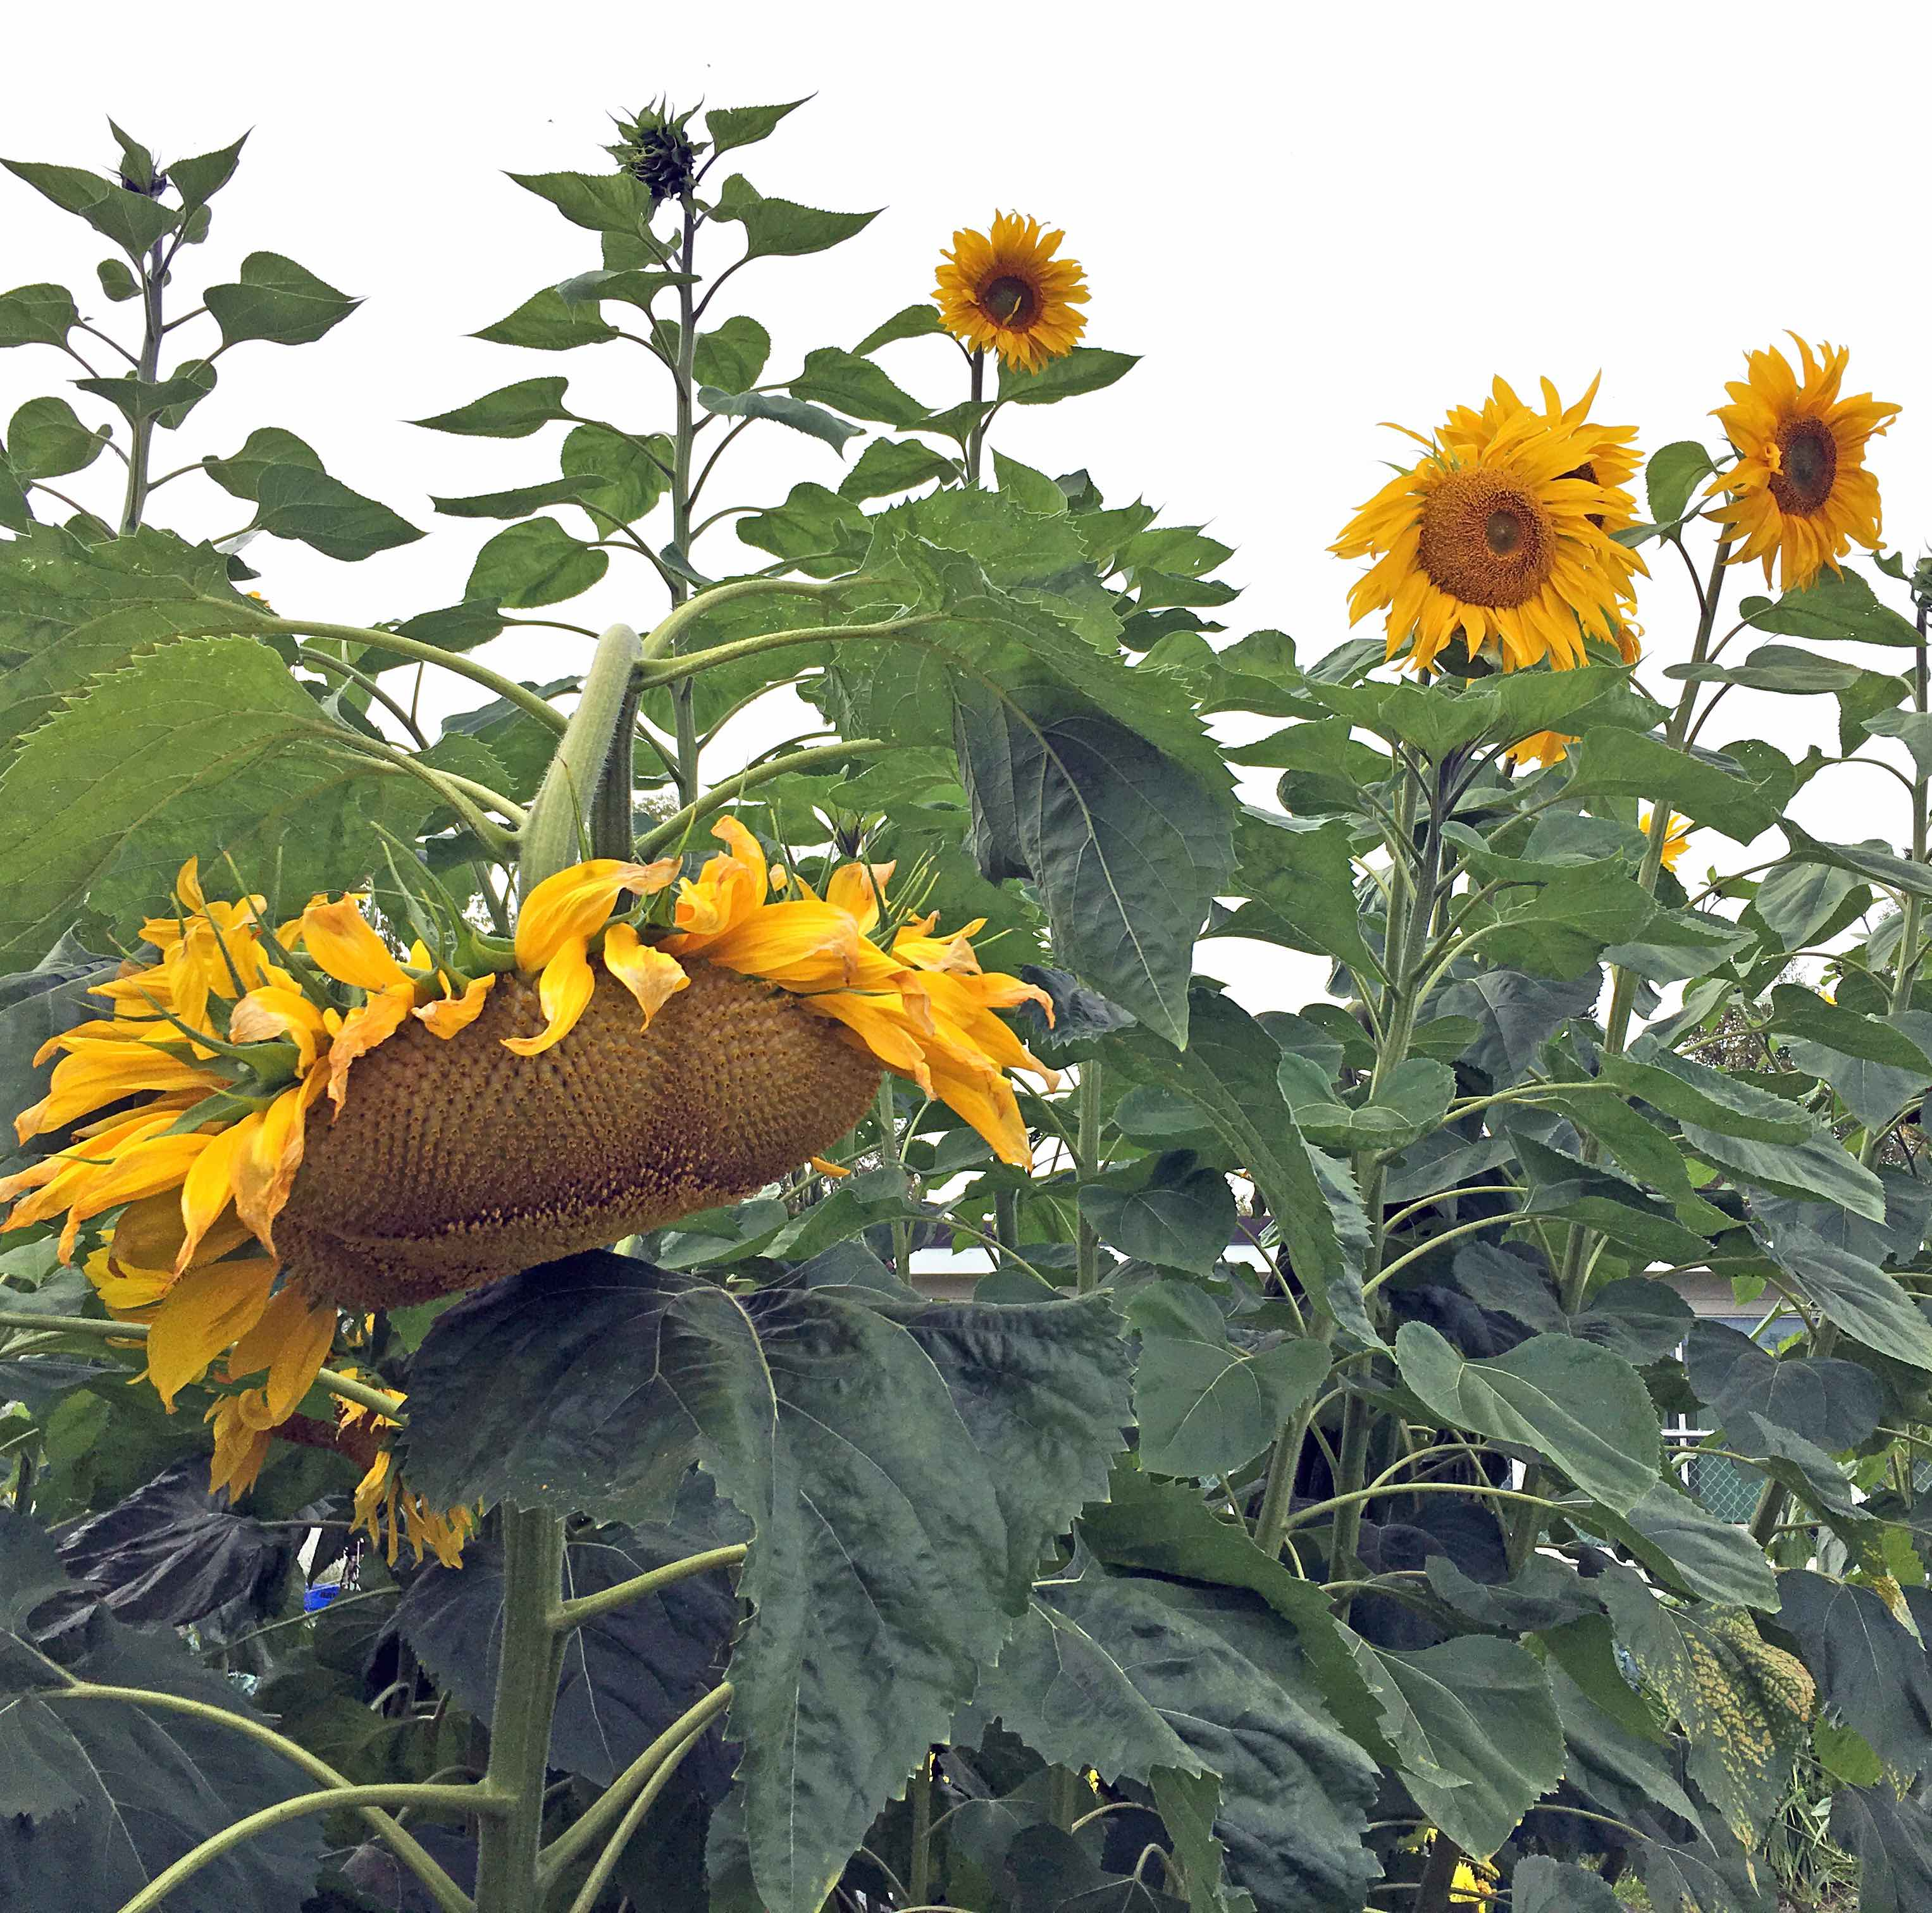 Several yellow sunflowers bloom on tall green leafy stalks.